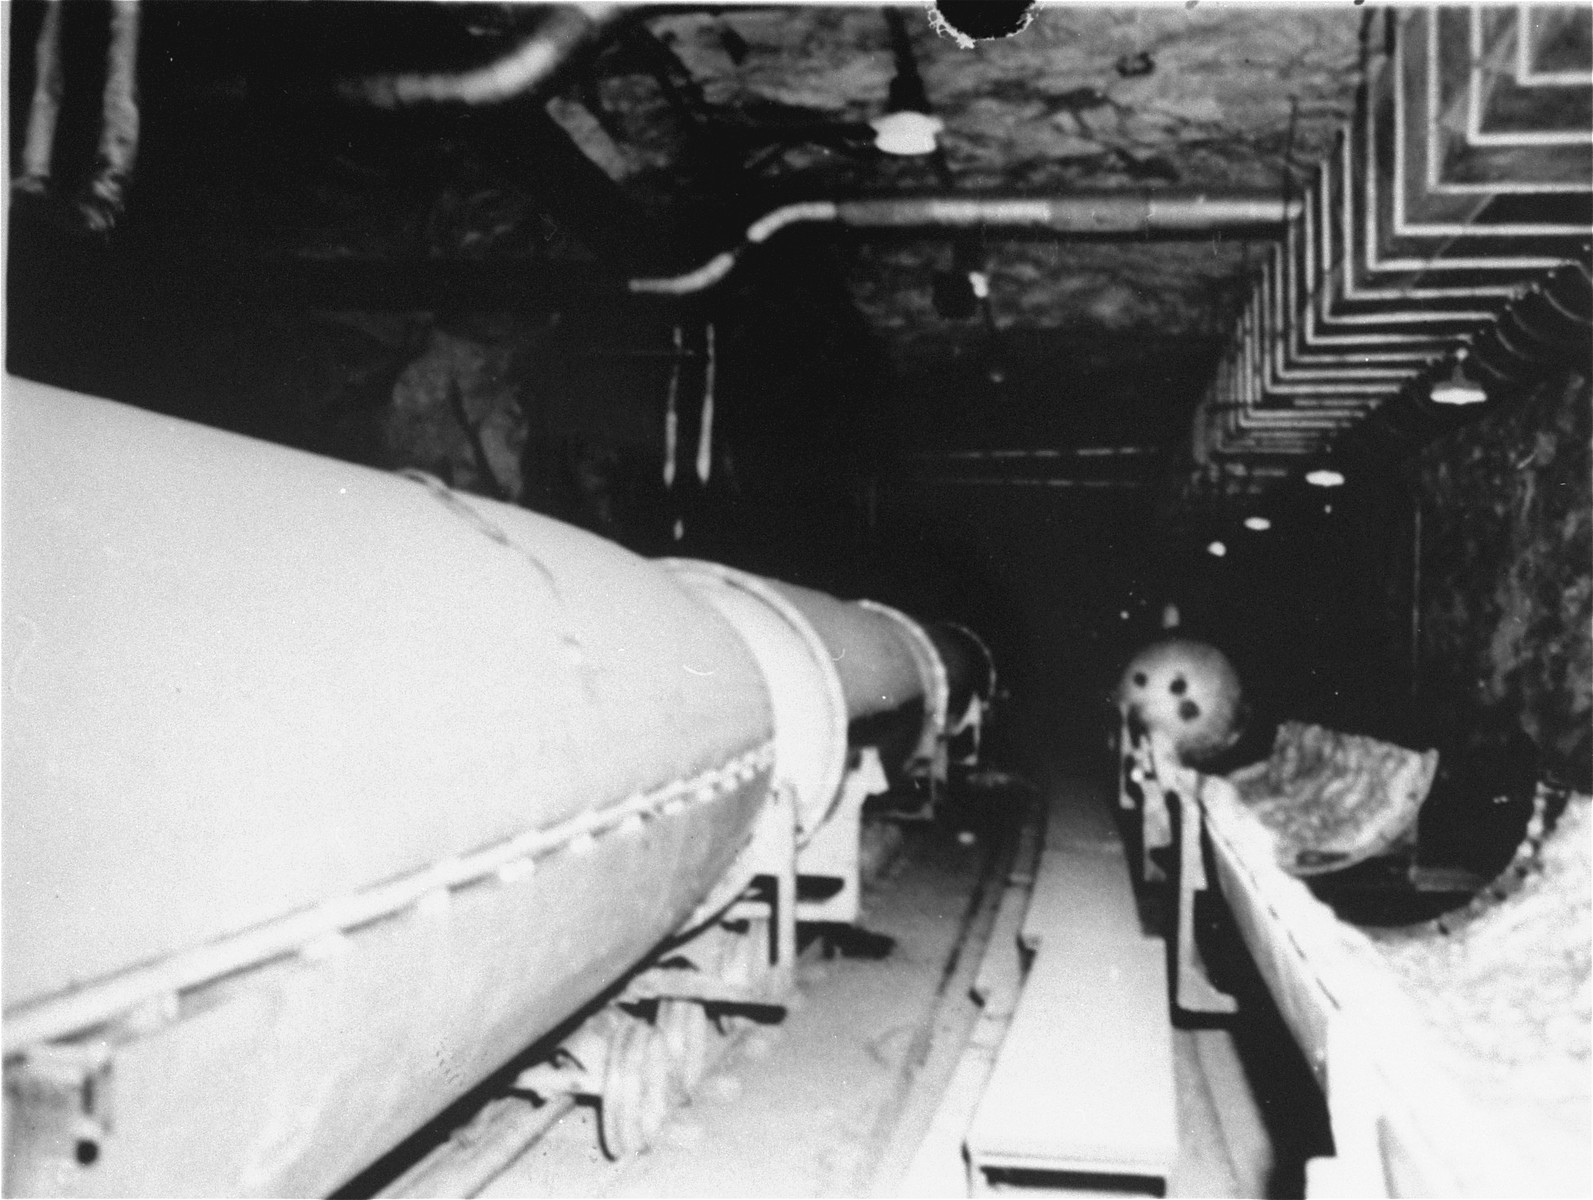 The center section, or fuel section, assembly line in the underground rocket factory at Dora-Mittelbau.